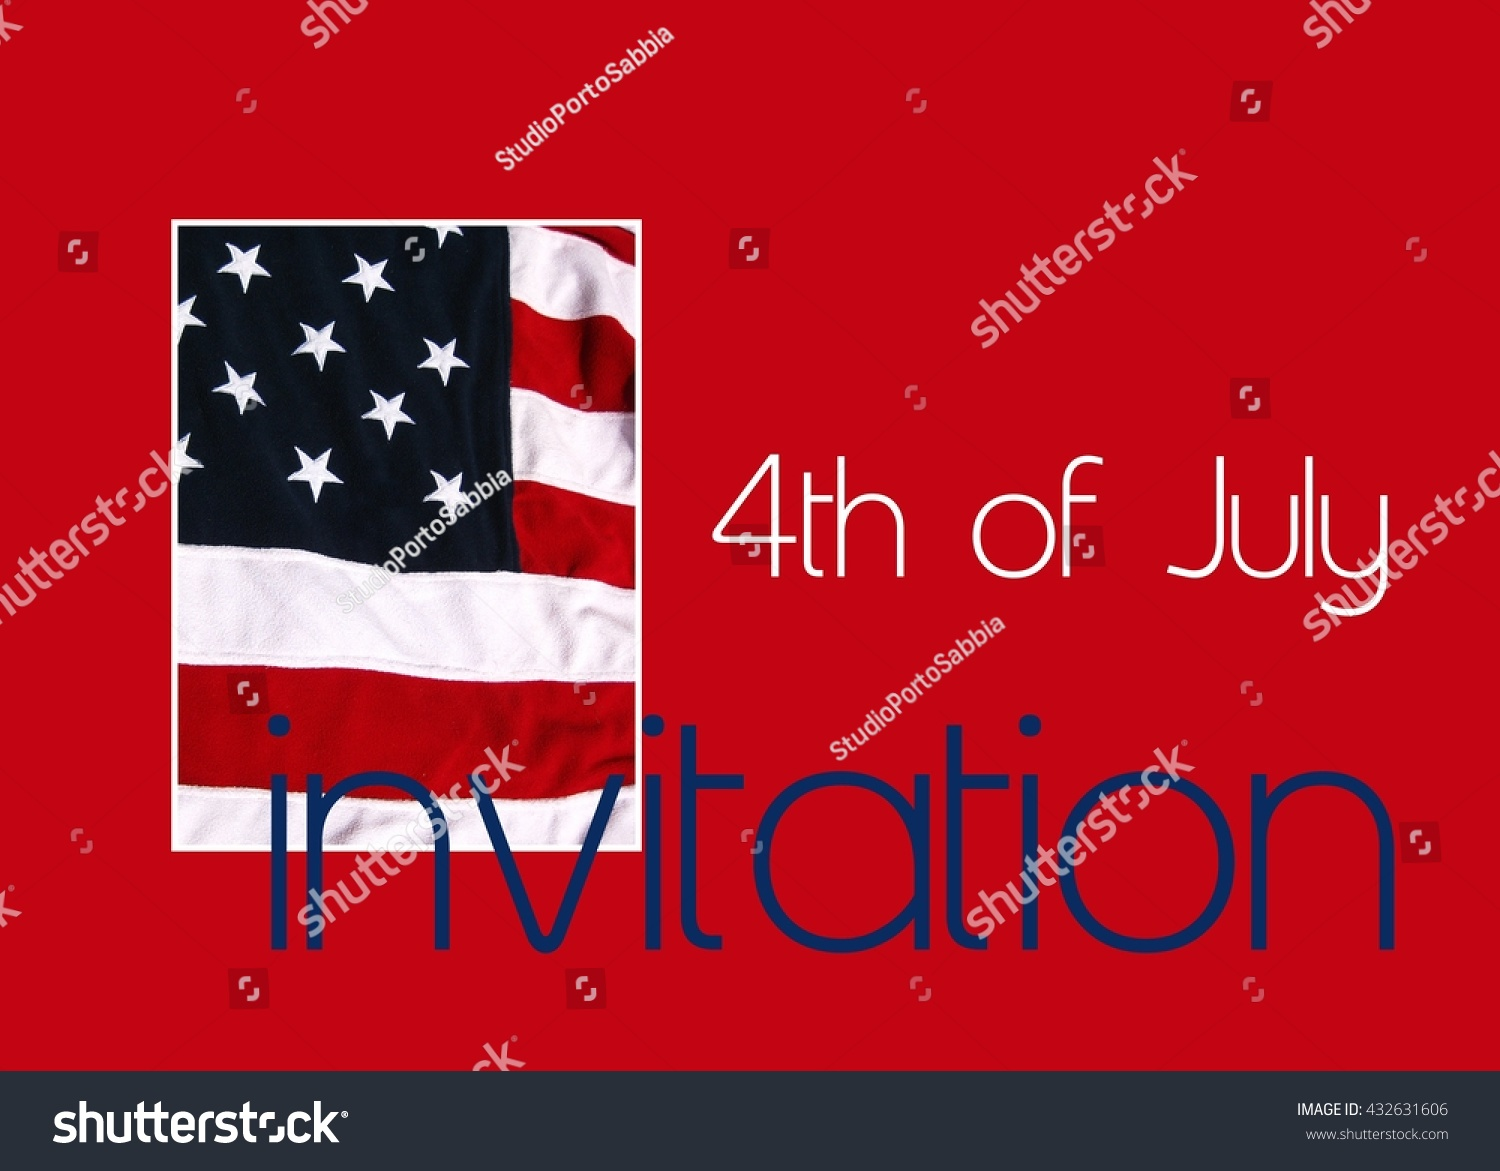 4th July Party Invitation American Flag Stock Illustration 432631606 ...